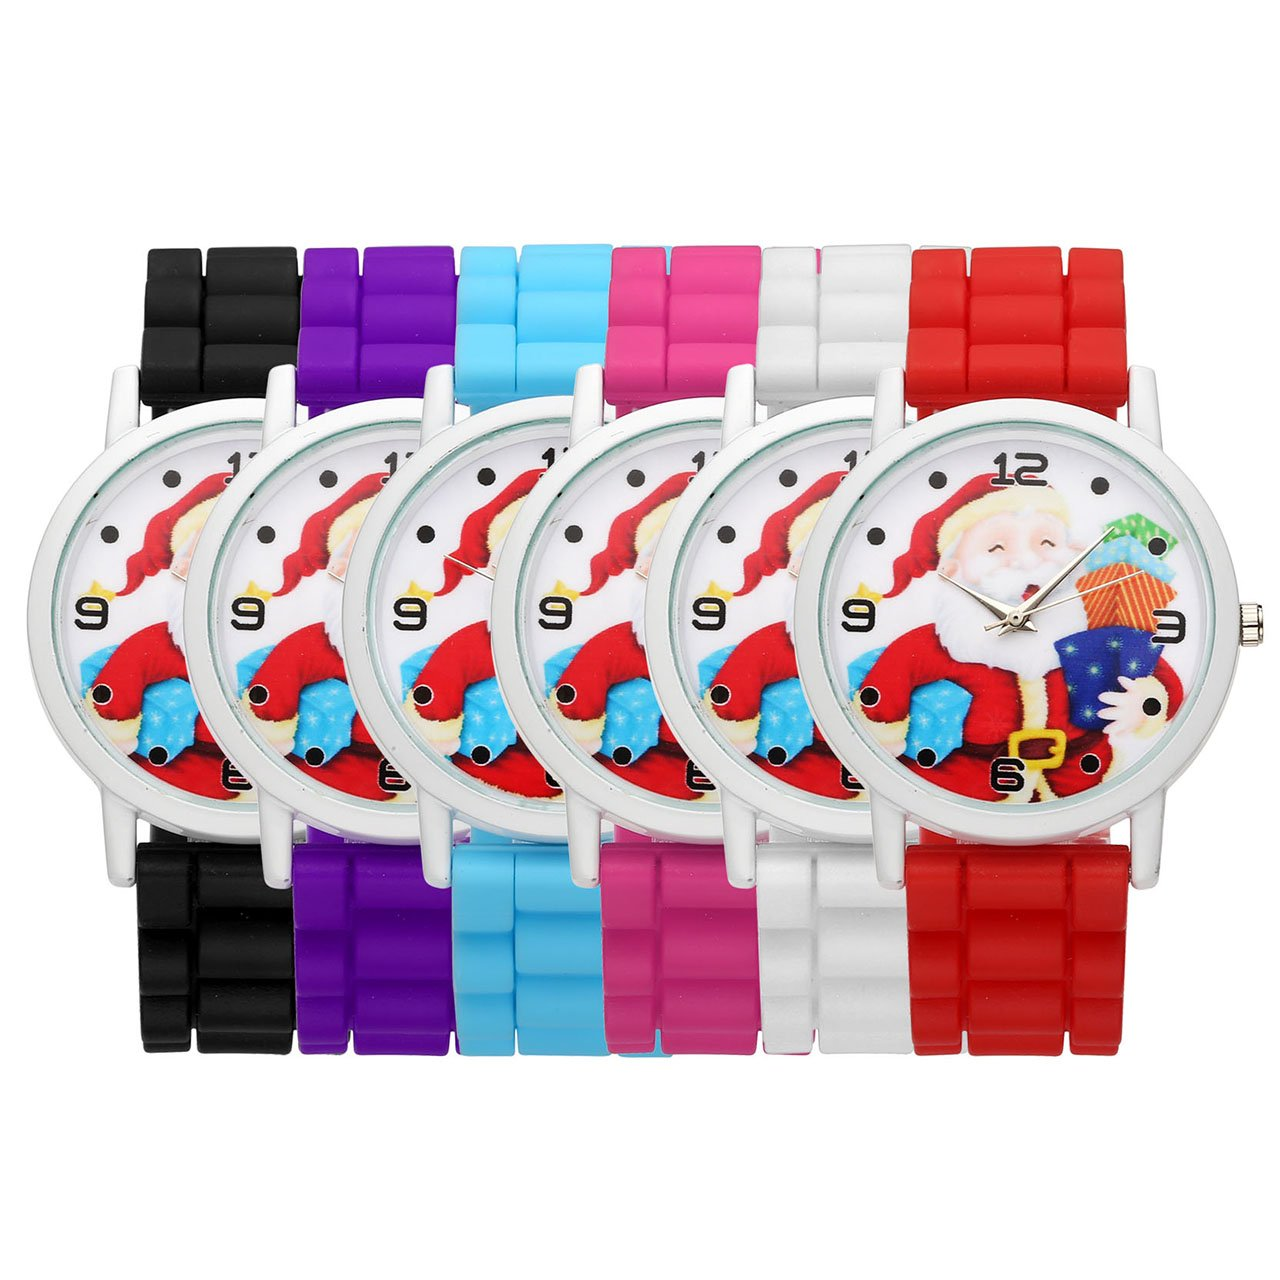 Top Plaza Cute Casual Father Christmas Analog Quartz Watch Santa Claus Pattern Silicone Band Arabic Numerals Wrist Watch for Kids Children #2(Pack of 6)